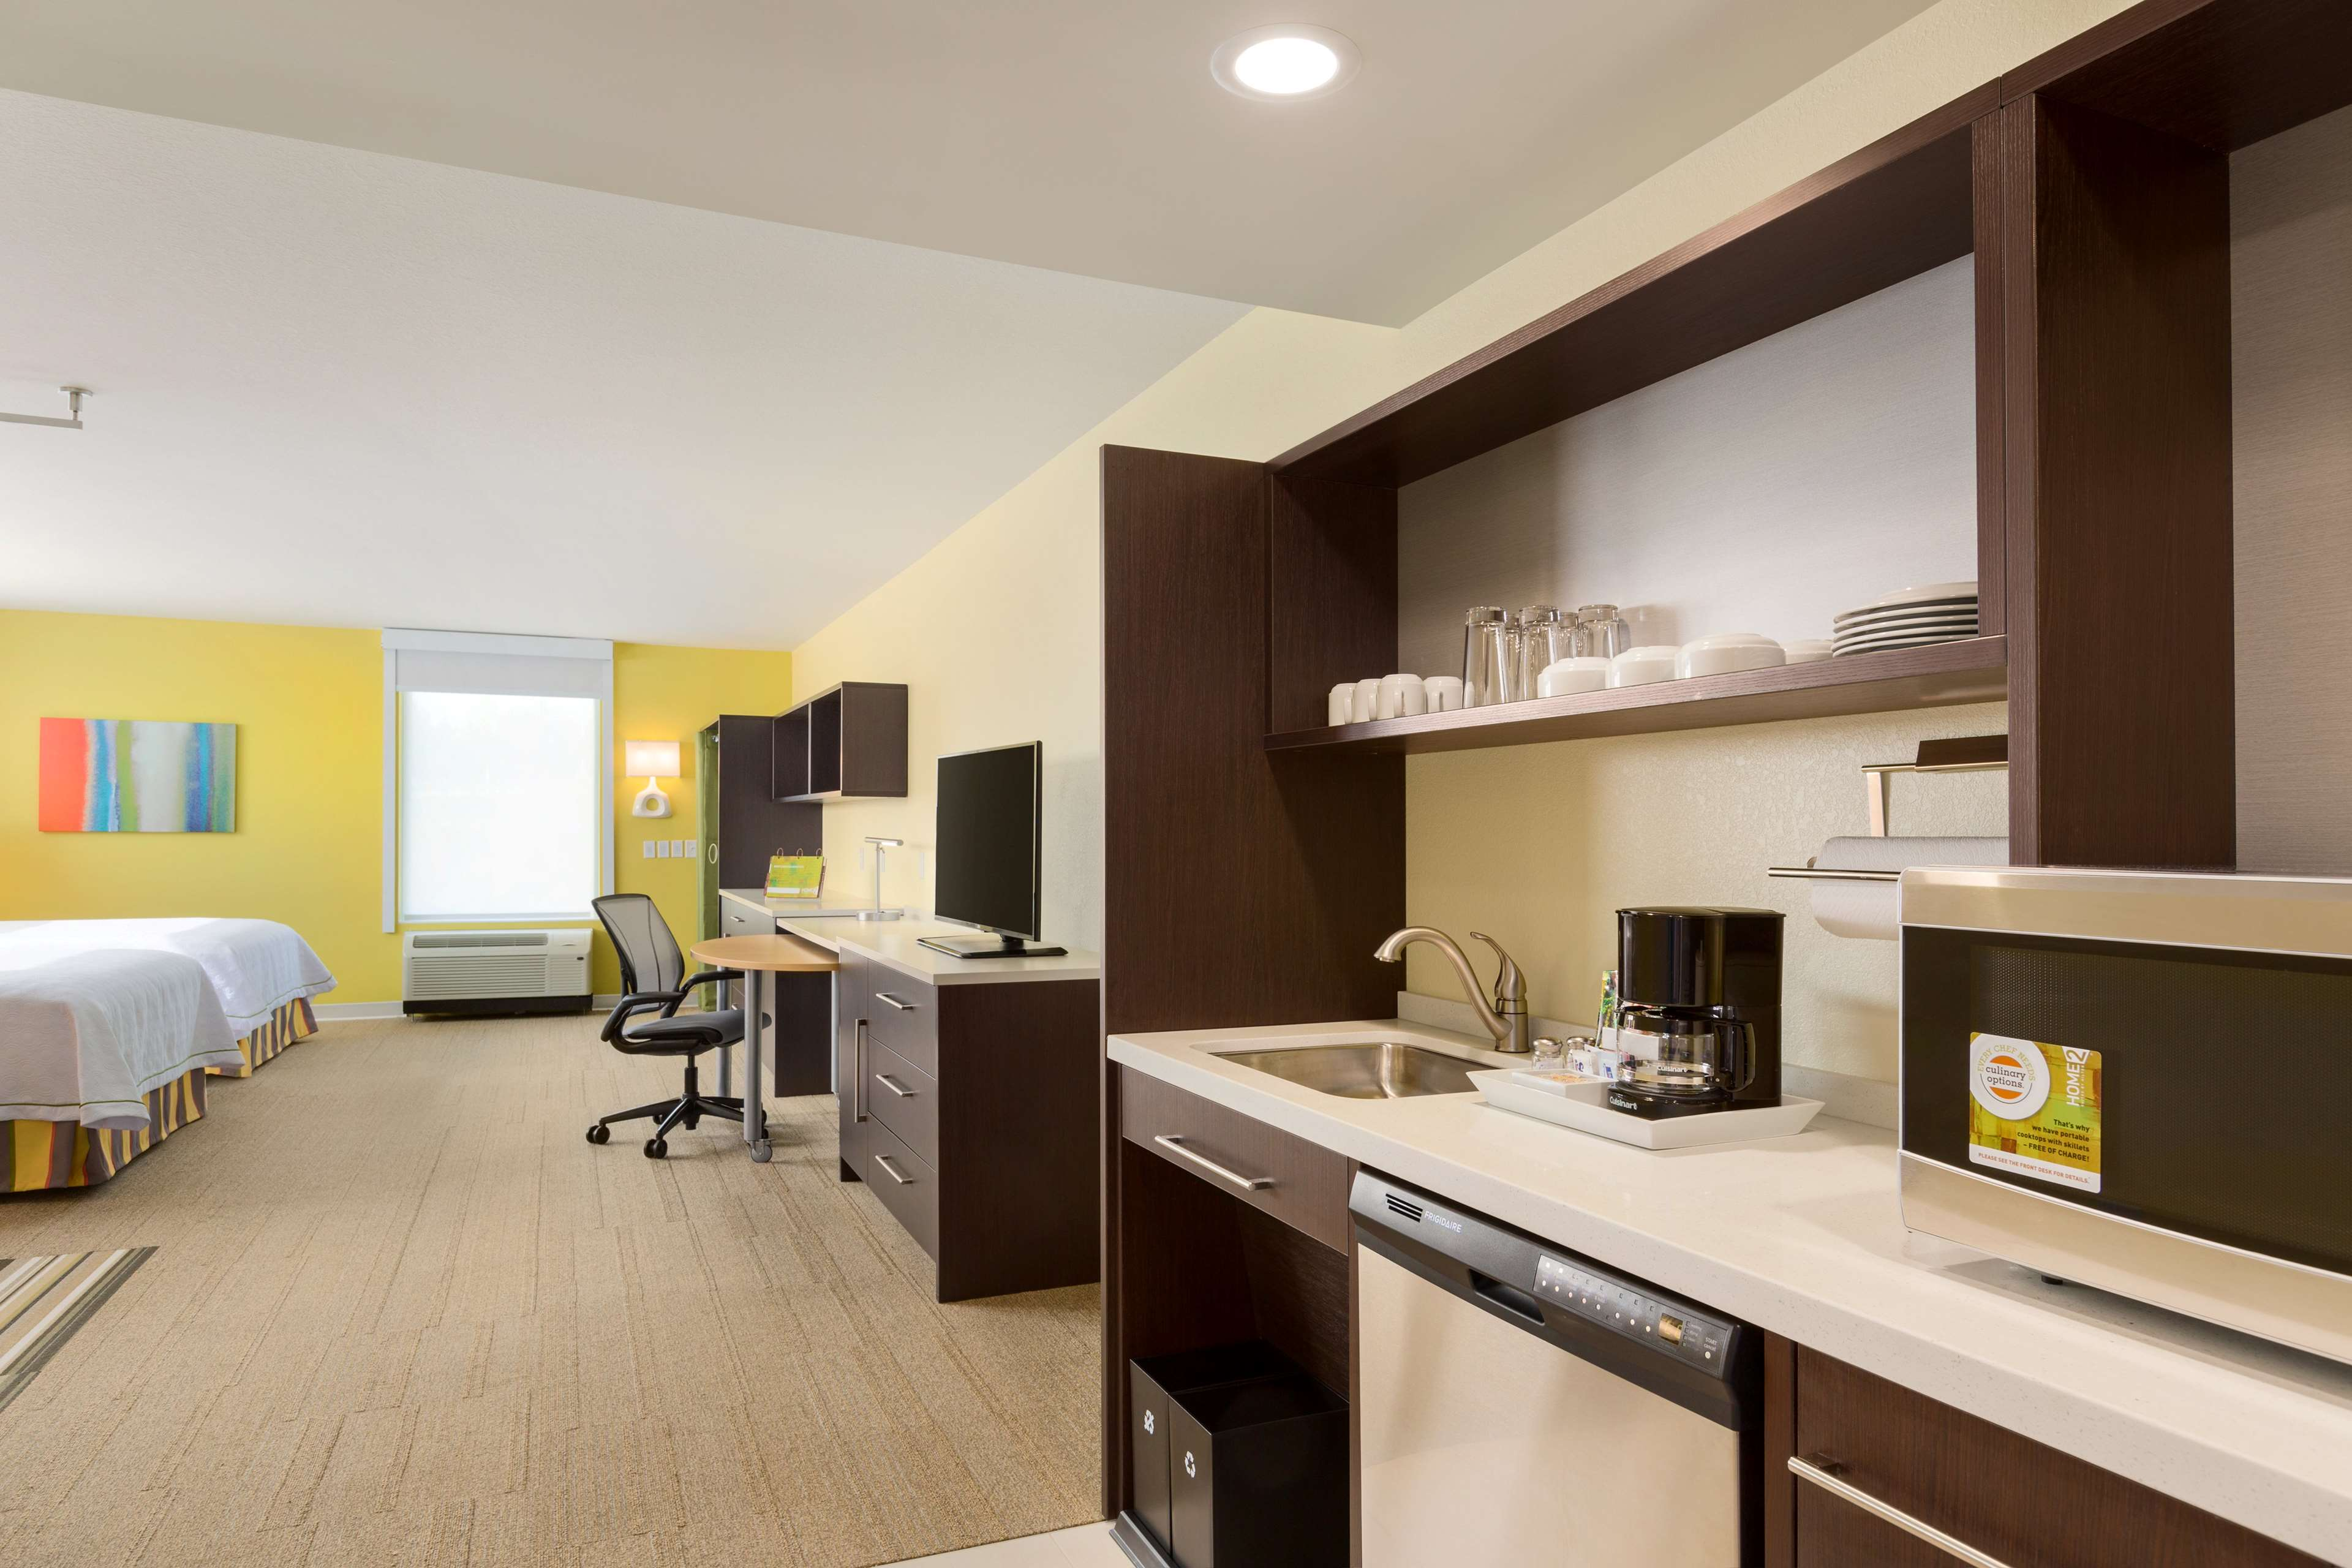 Home2 Suites By Hilton Youngstown West - Austintown image 16